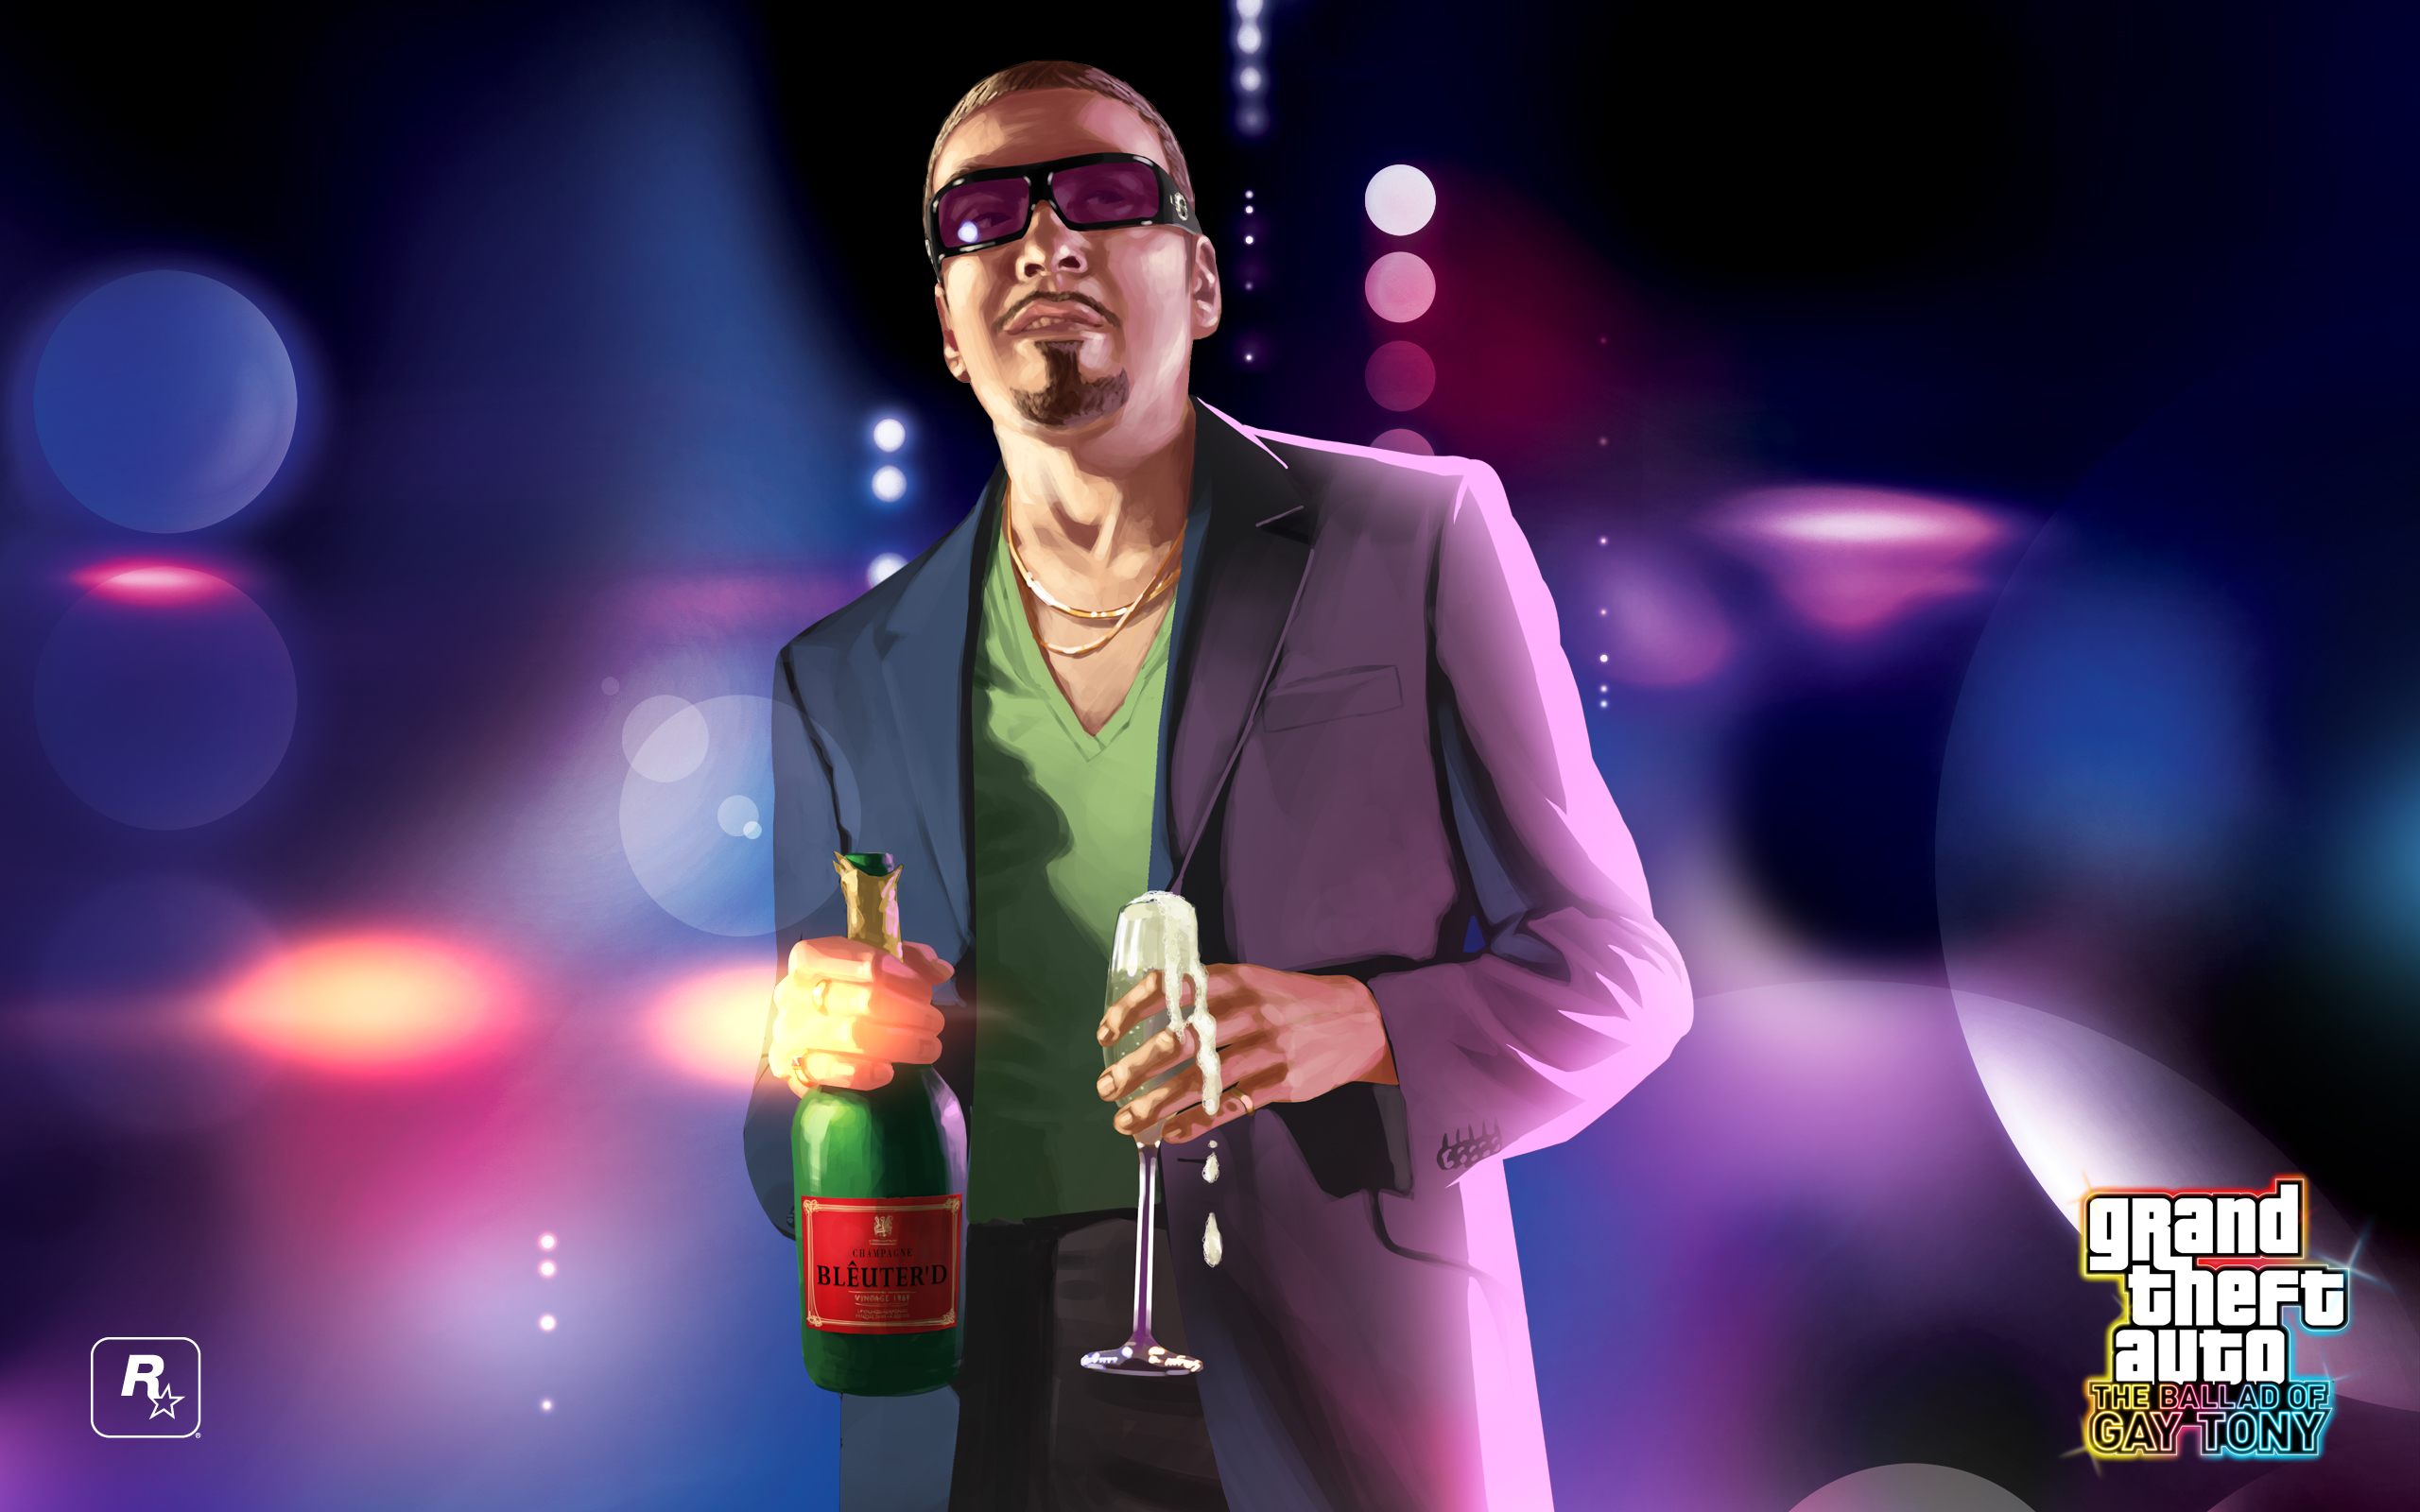 A masculine figure wears sunglasses inside, holding a bottle of champagne and an overflowing glass.